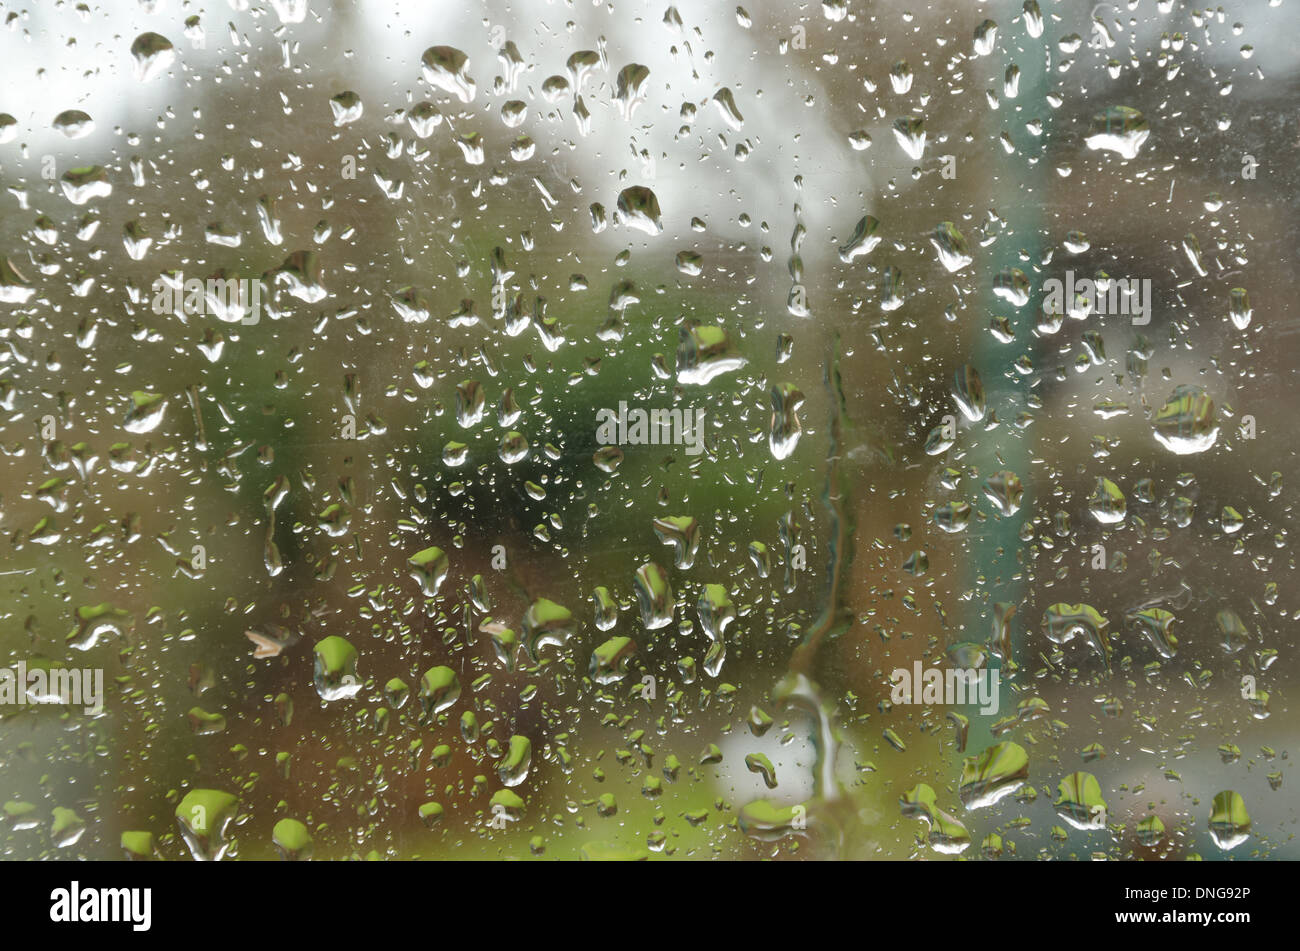 Trapped inside on a windy bleak rainy day in autumn or winter with no leaves on trees window raindrops view bleak weather - Stock Image